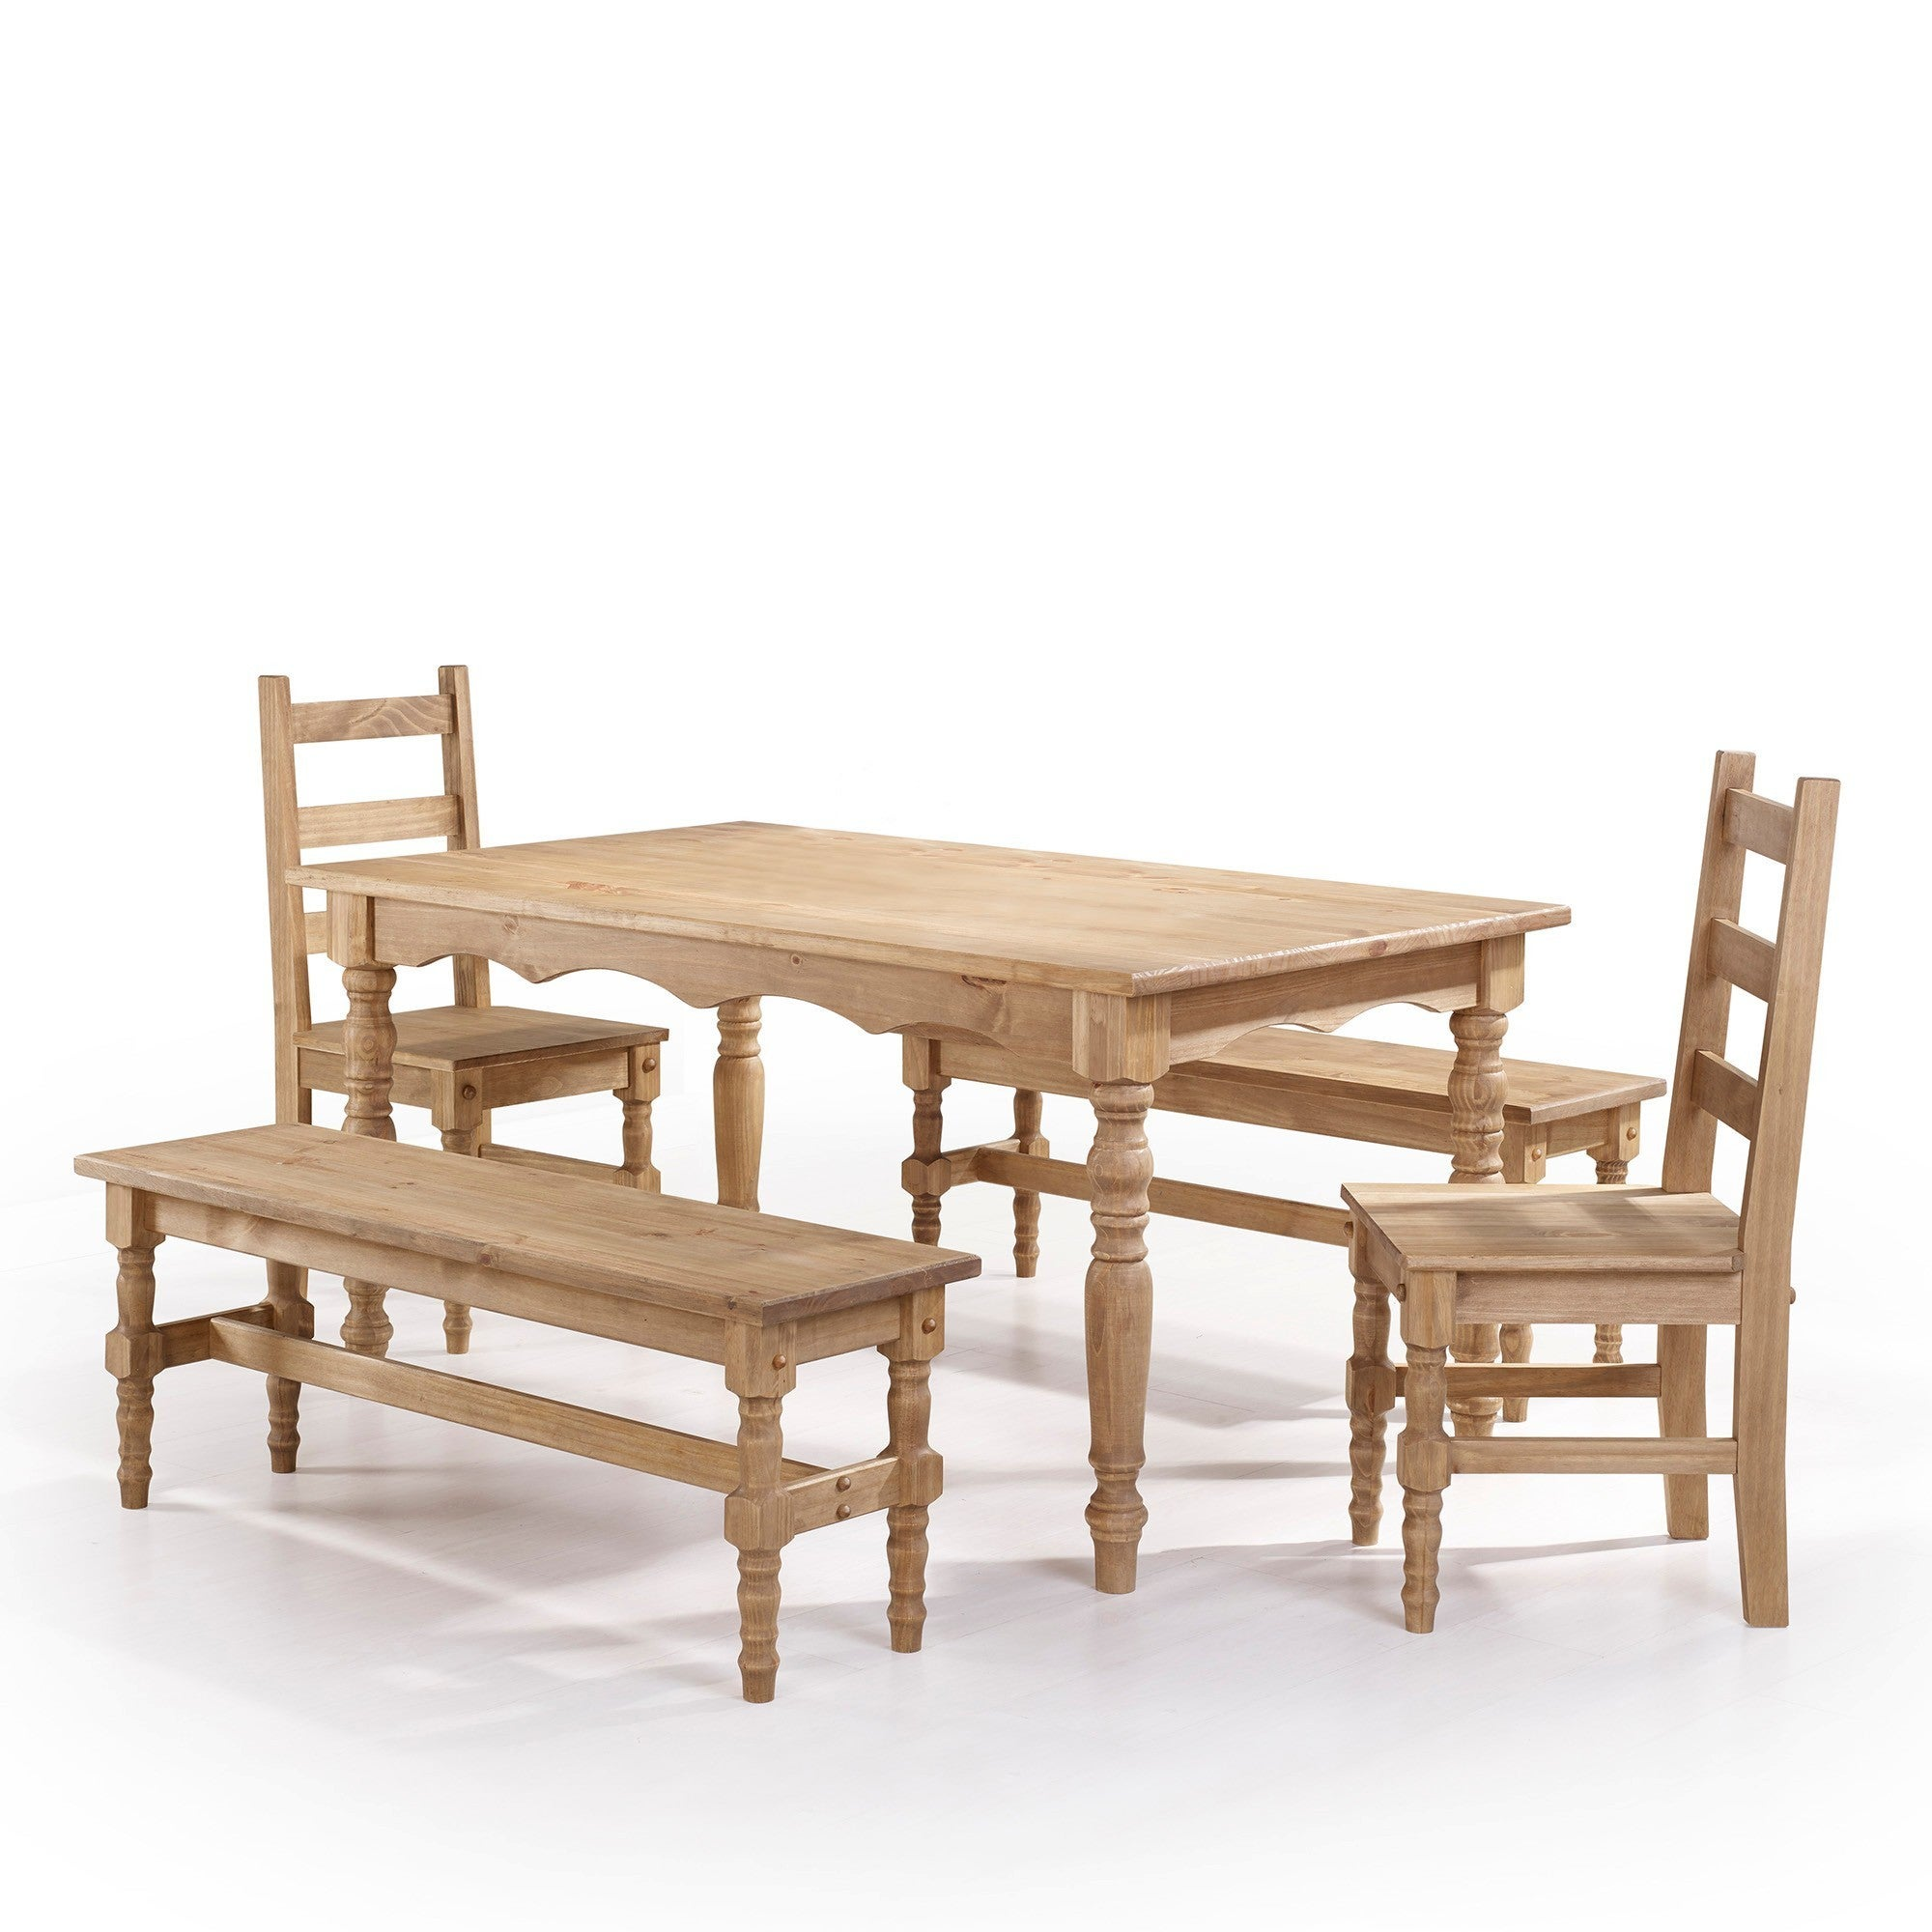 Swell Manhattan Comfort Jay 5 Piece Solid Wood Dining Set With 2 Benches 2 Chairs And 1 Table Ibusinesslaw Wood Chair Design Ideas Ibusinesslaworg